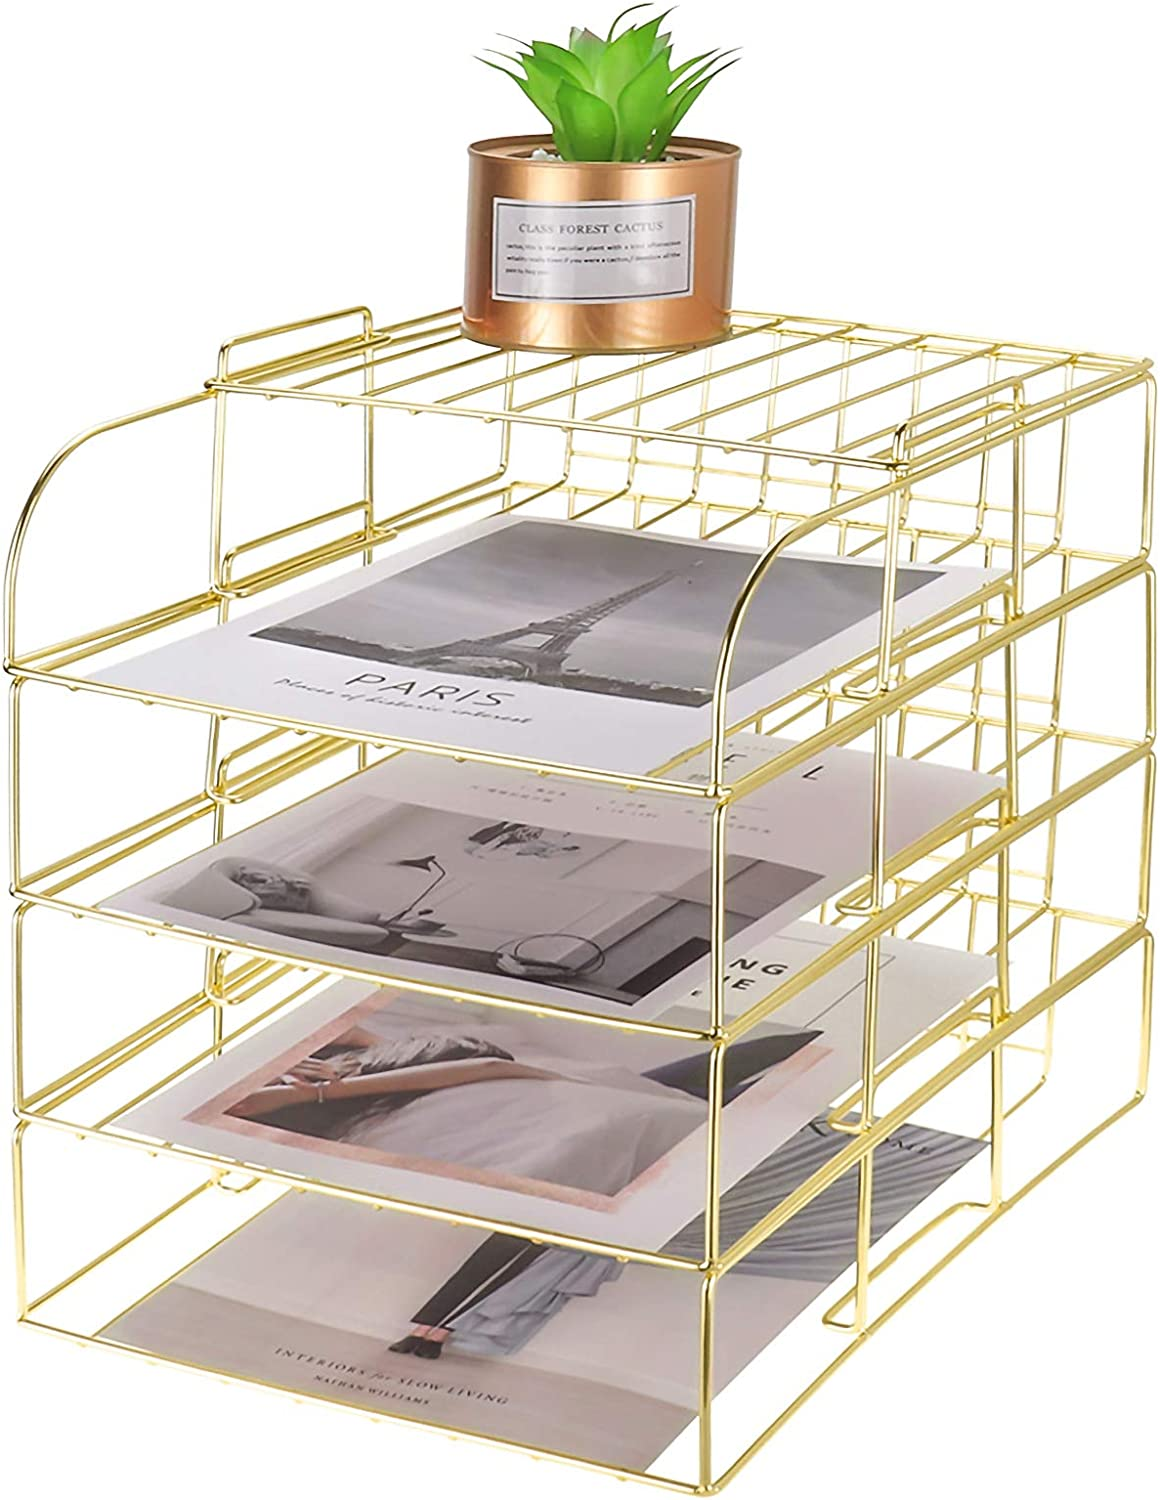 LEORISO Gold Desk Organizer, Stackable Paper Holder Rack Set of 4, Metal Letter File Organizer Tray, Desk Accessories for School Home Office Supplies